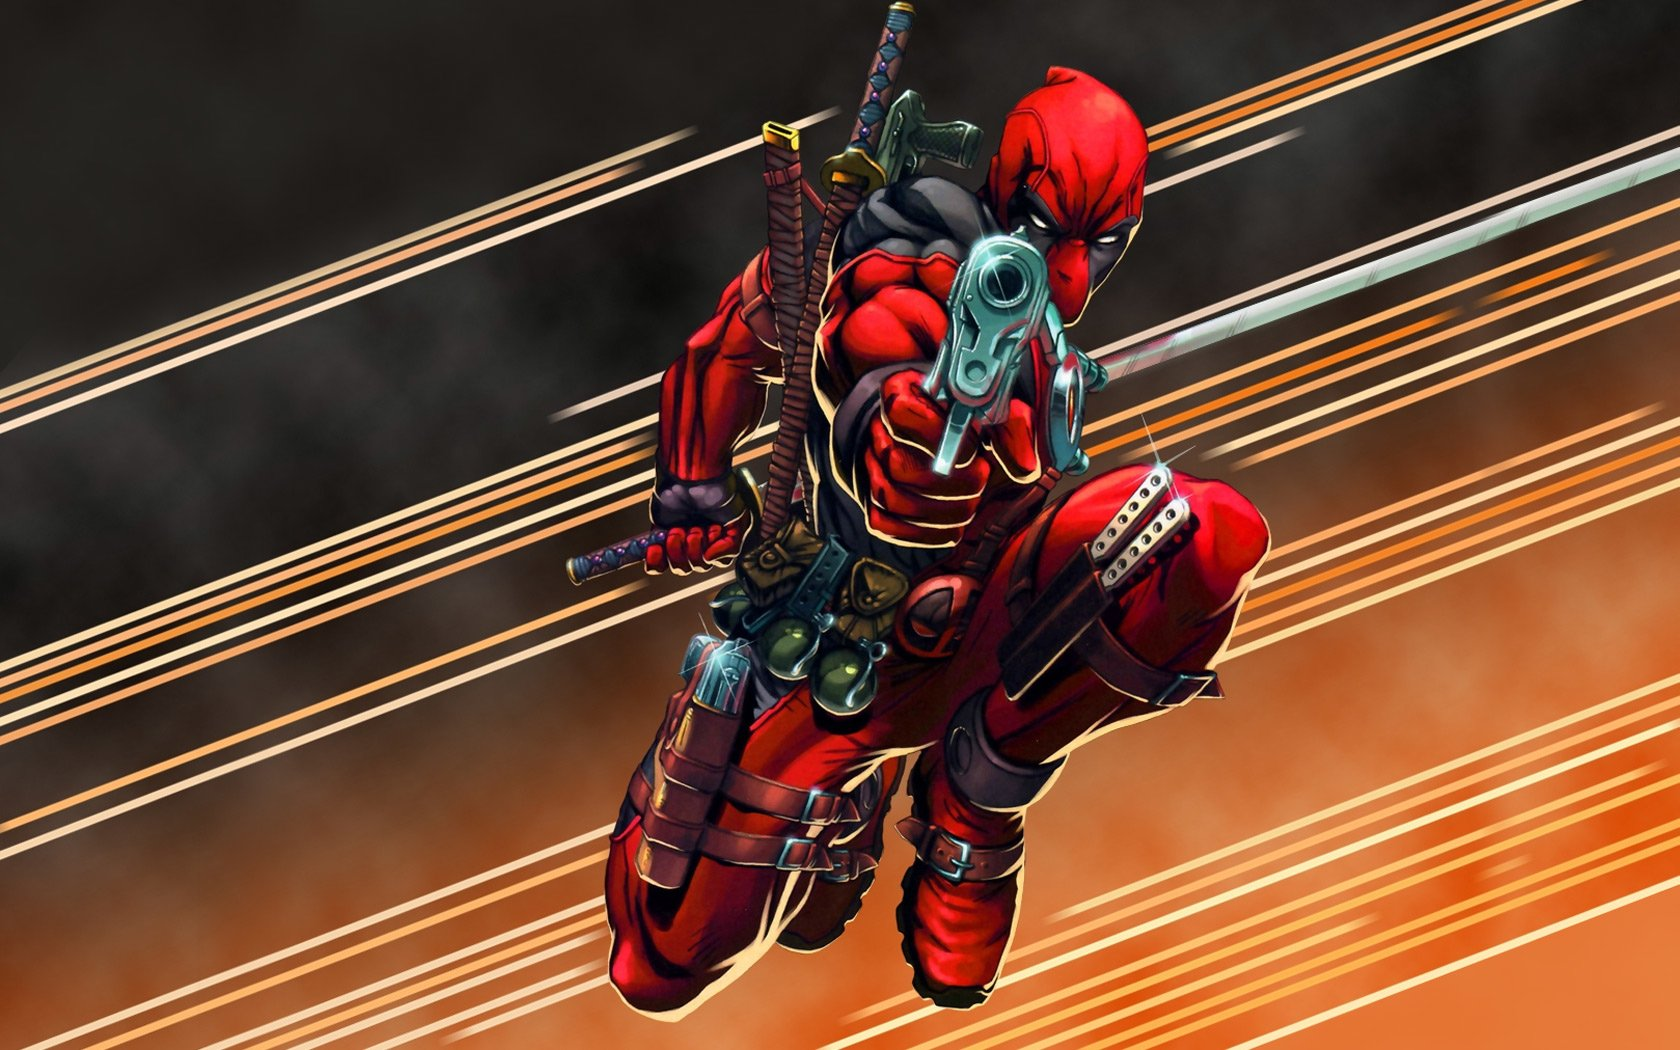 Comics - Deadpool  Comics Marvel Comics Merc with a Mouth Wallpaper